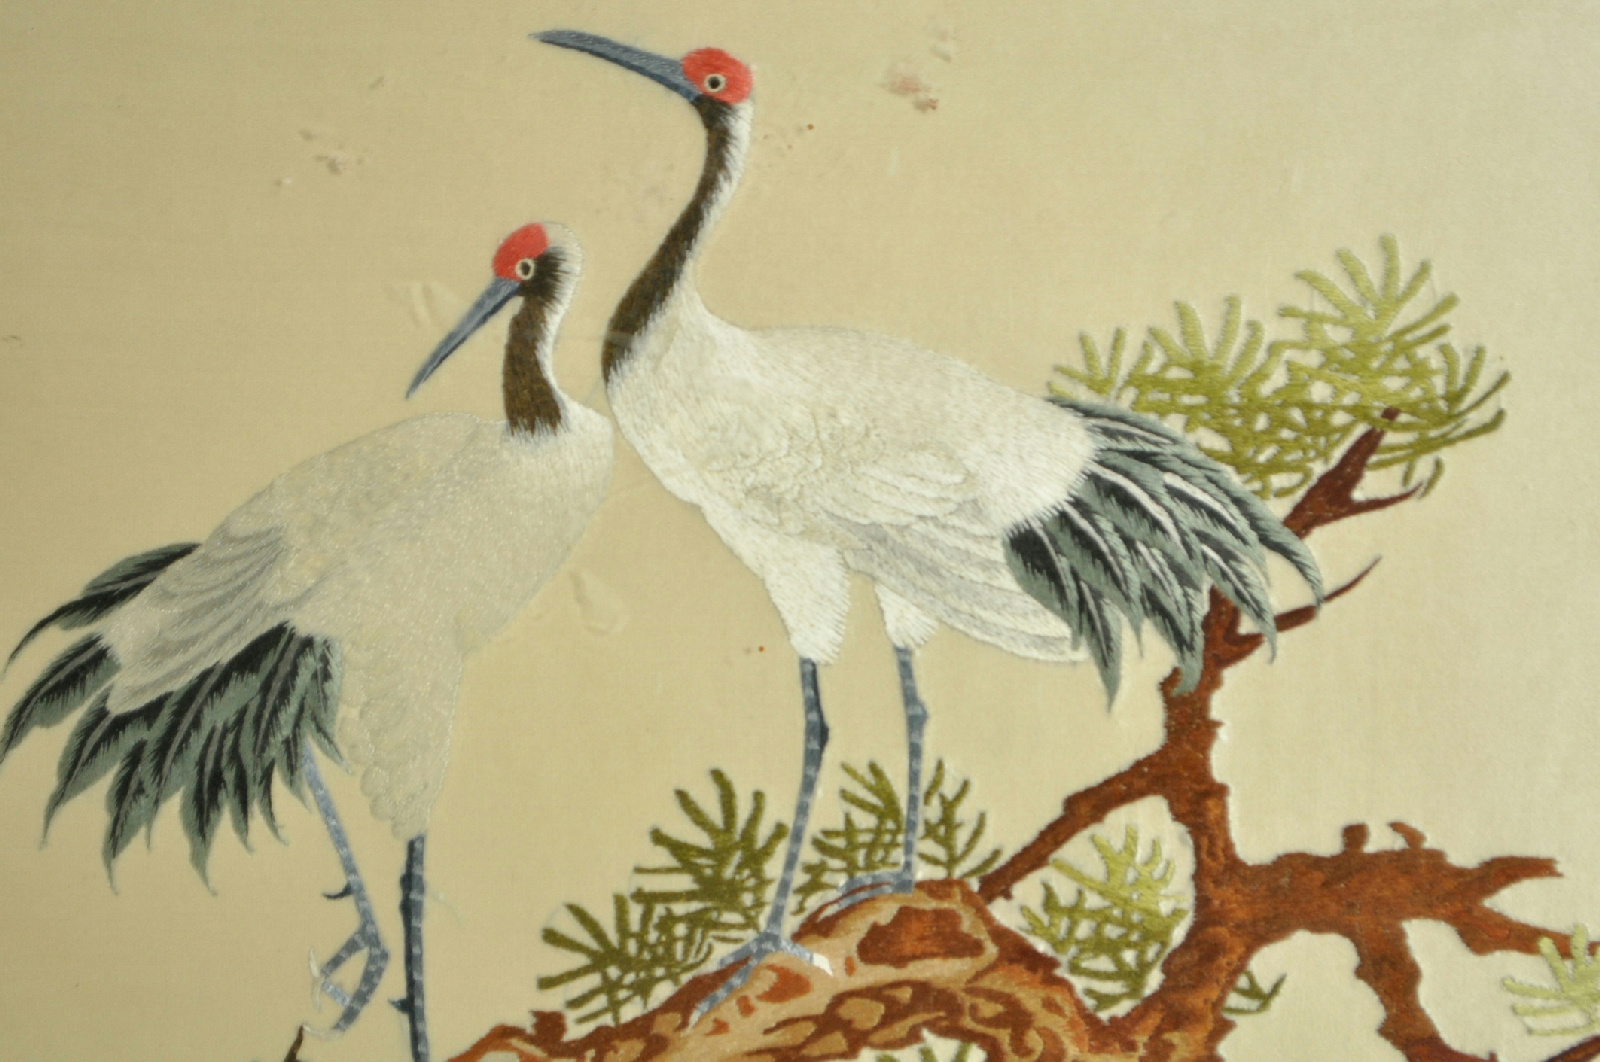 Asian Embroidery Crane Birds Naturalist Fabric Wall Art Ebay